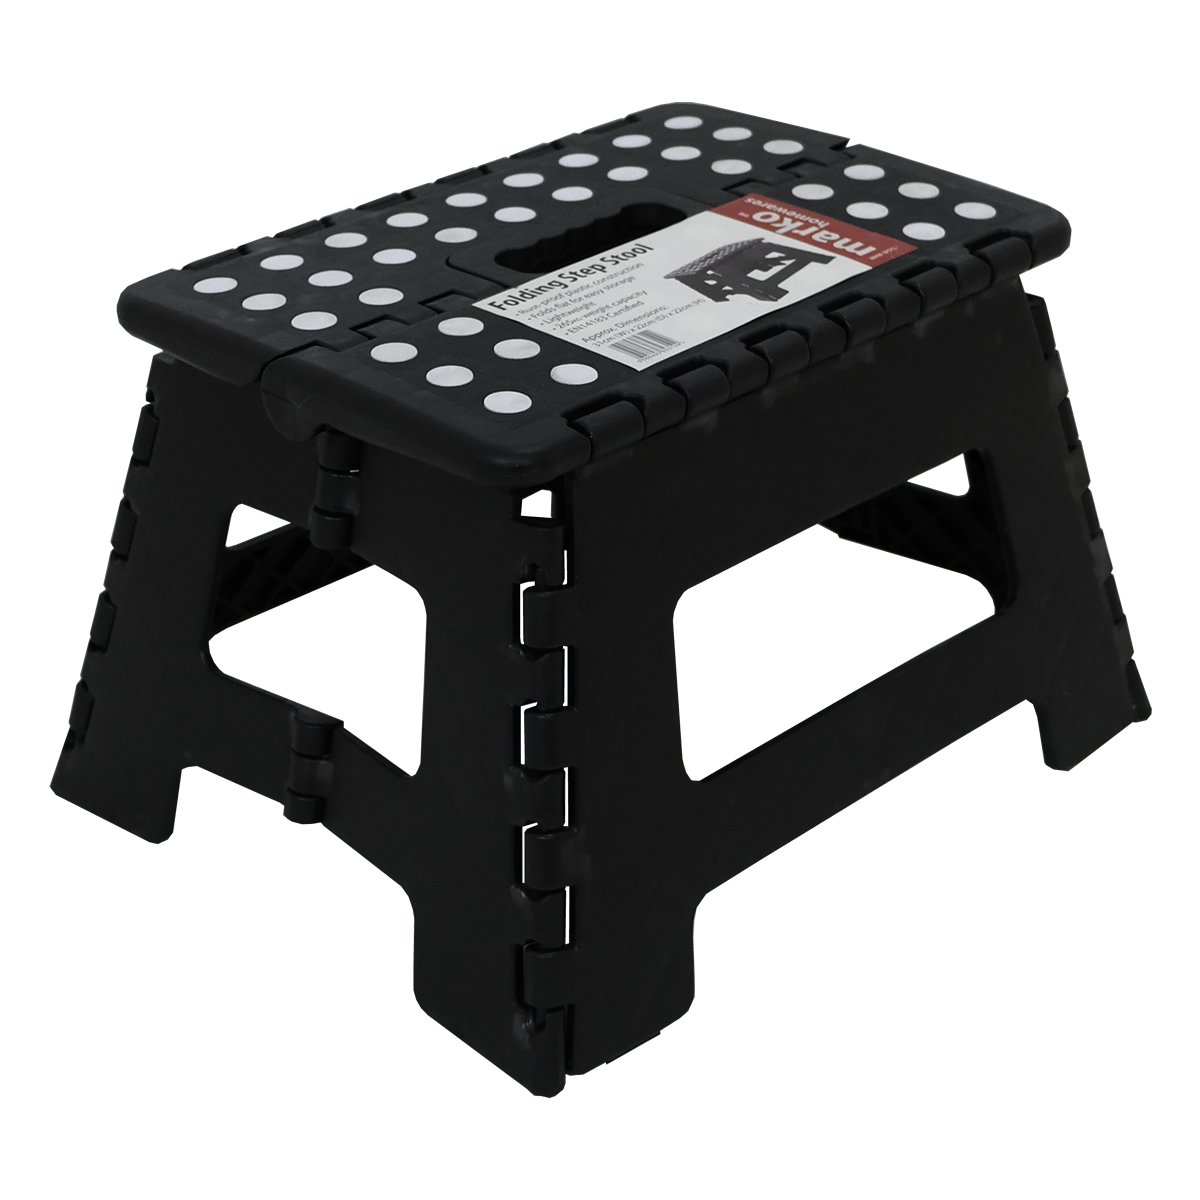 150KG Single Step Plastic Folding Step Up Stools Collapsible Foldaway Large Heavy Duty Amazon.co.uk Sports u0026 Outdoors  sc 1 st  Amazon UK : plastic folding stool - islam-shia.org